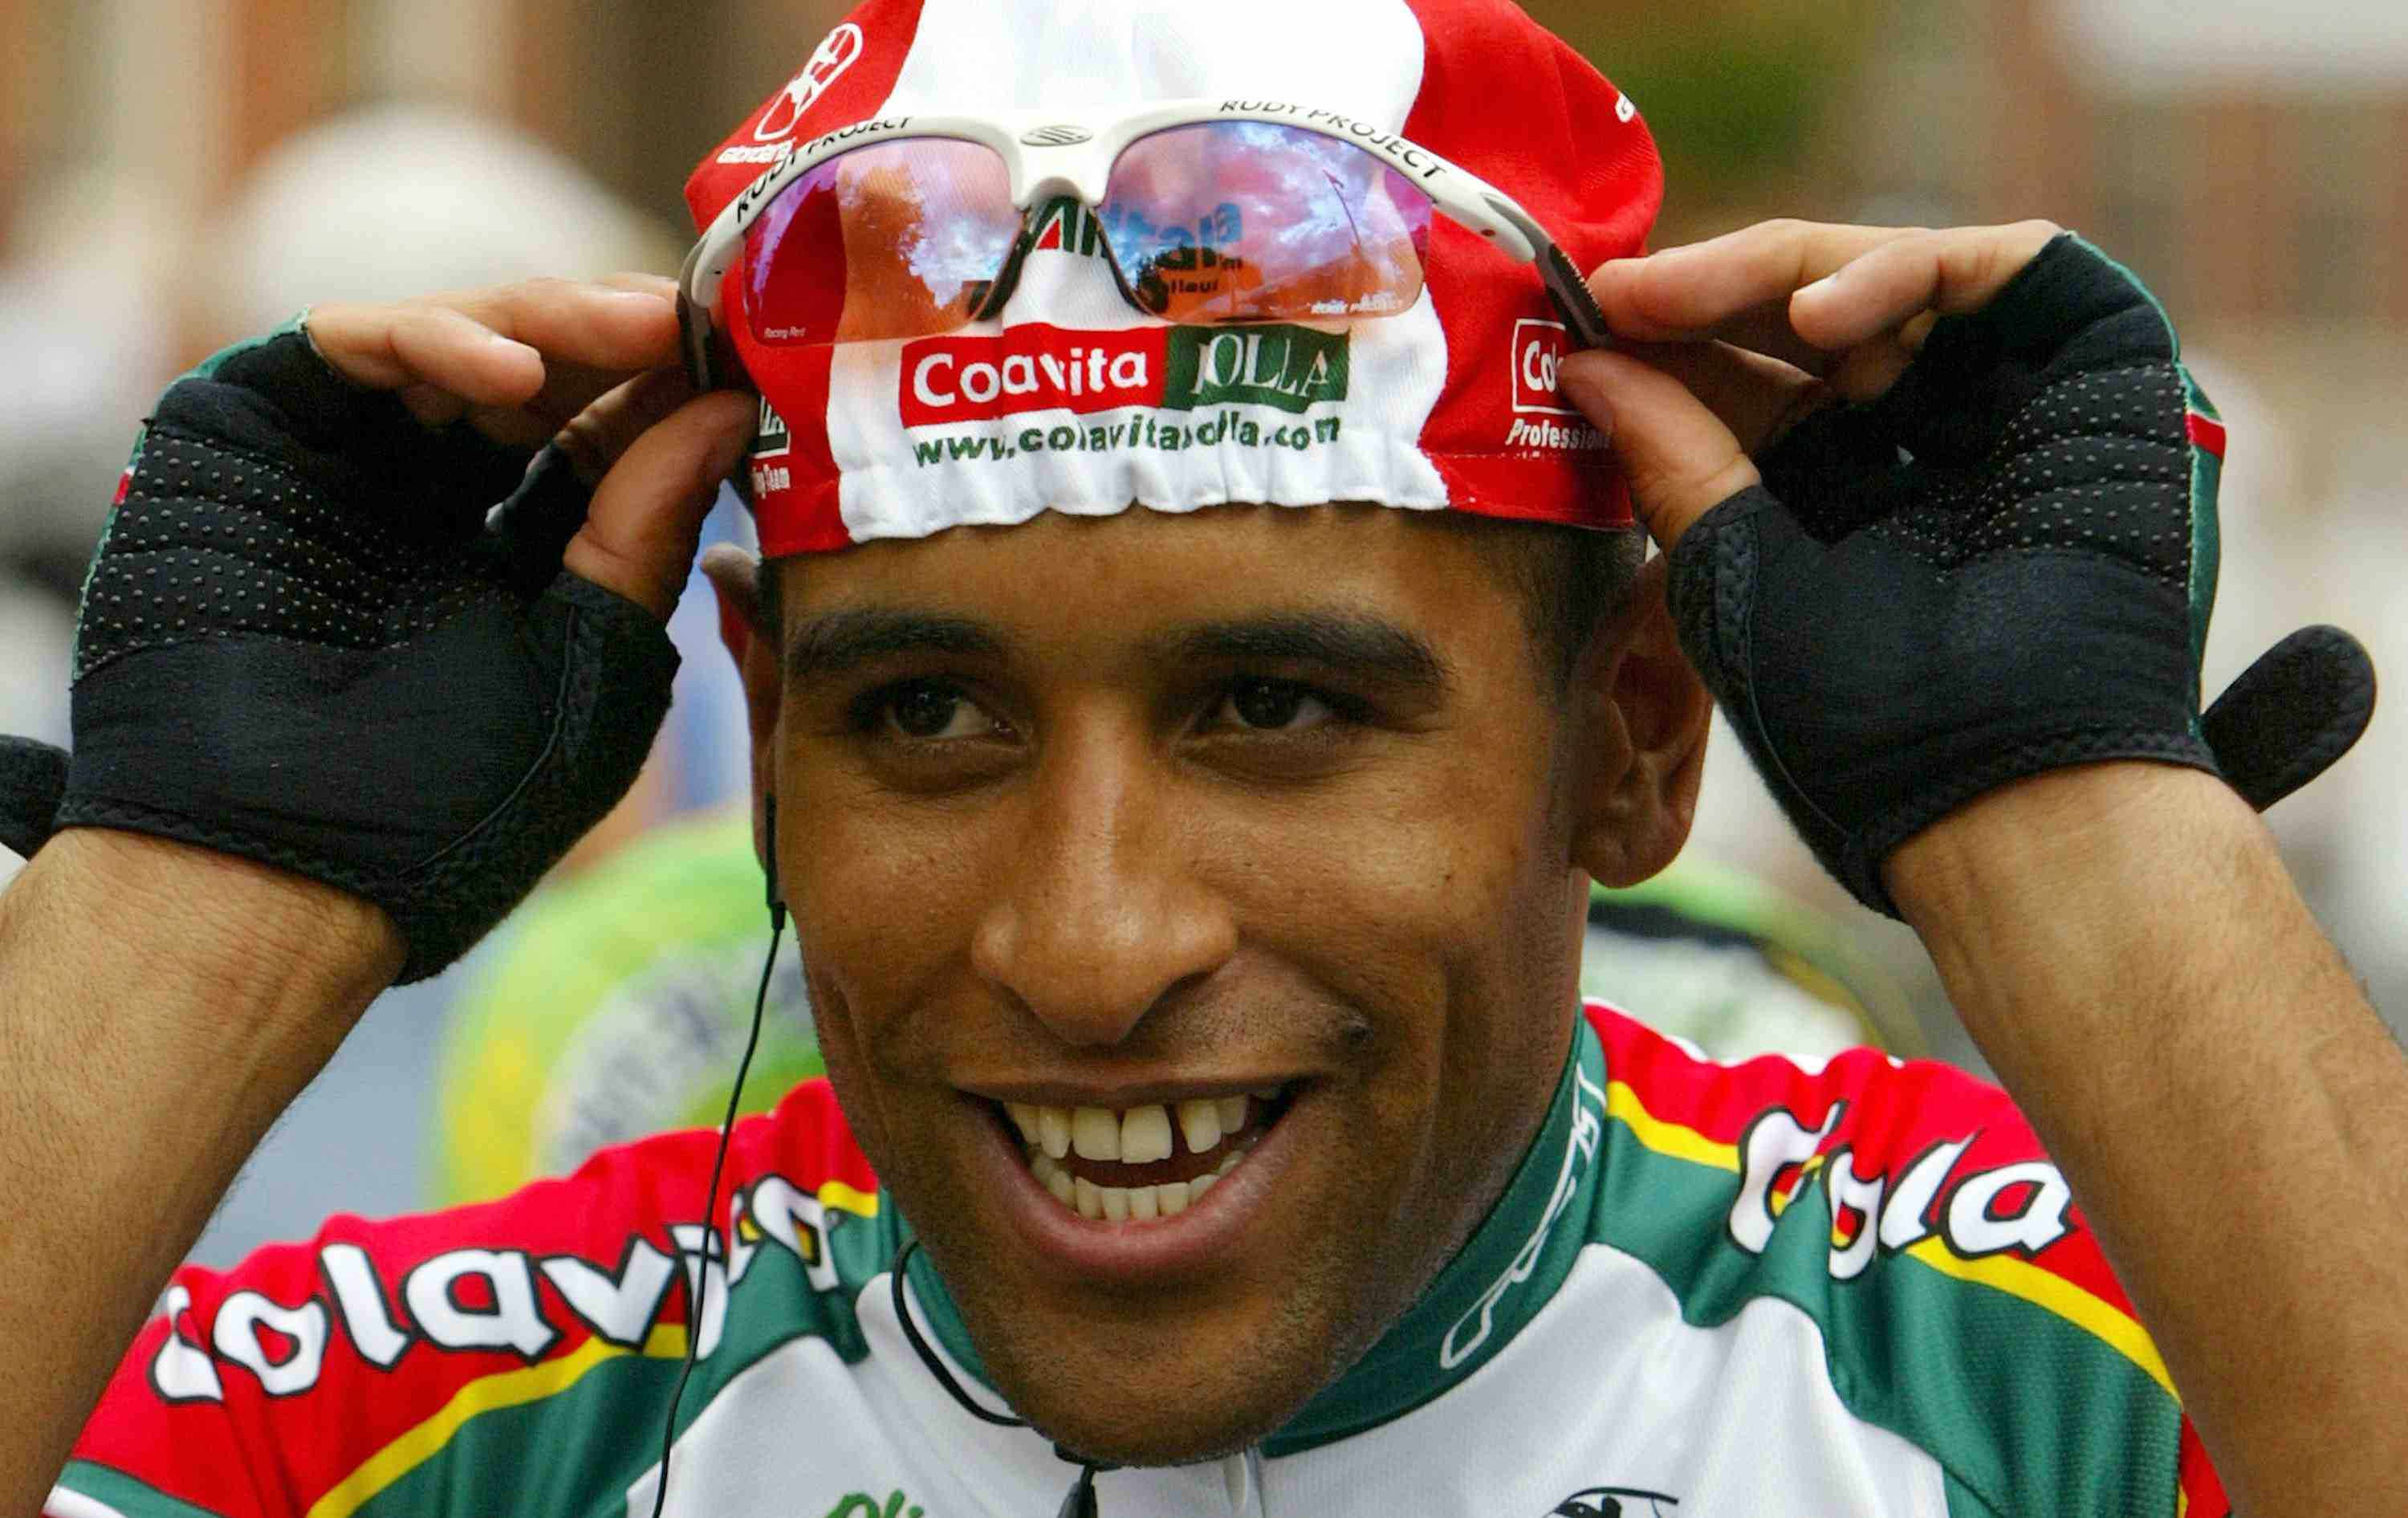 Cuban native Ivan Dominguez, riding for Colavita Bolla, prepares for the Wachovia Cycling Series event on June 3, 2004 in Trenton, New Jersey.